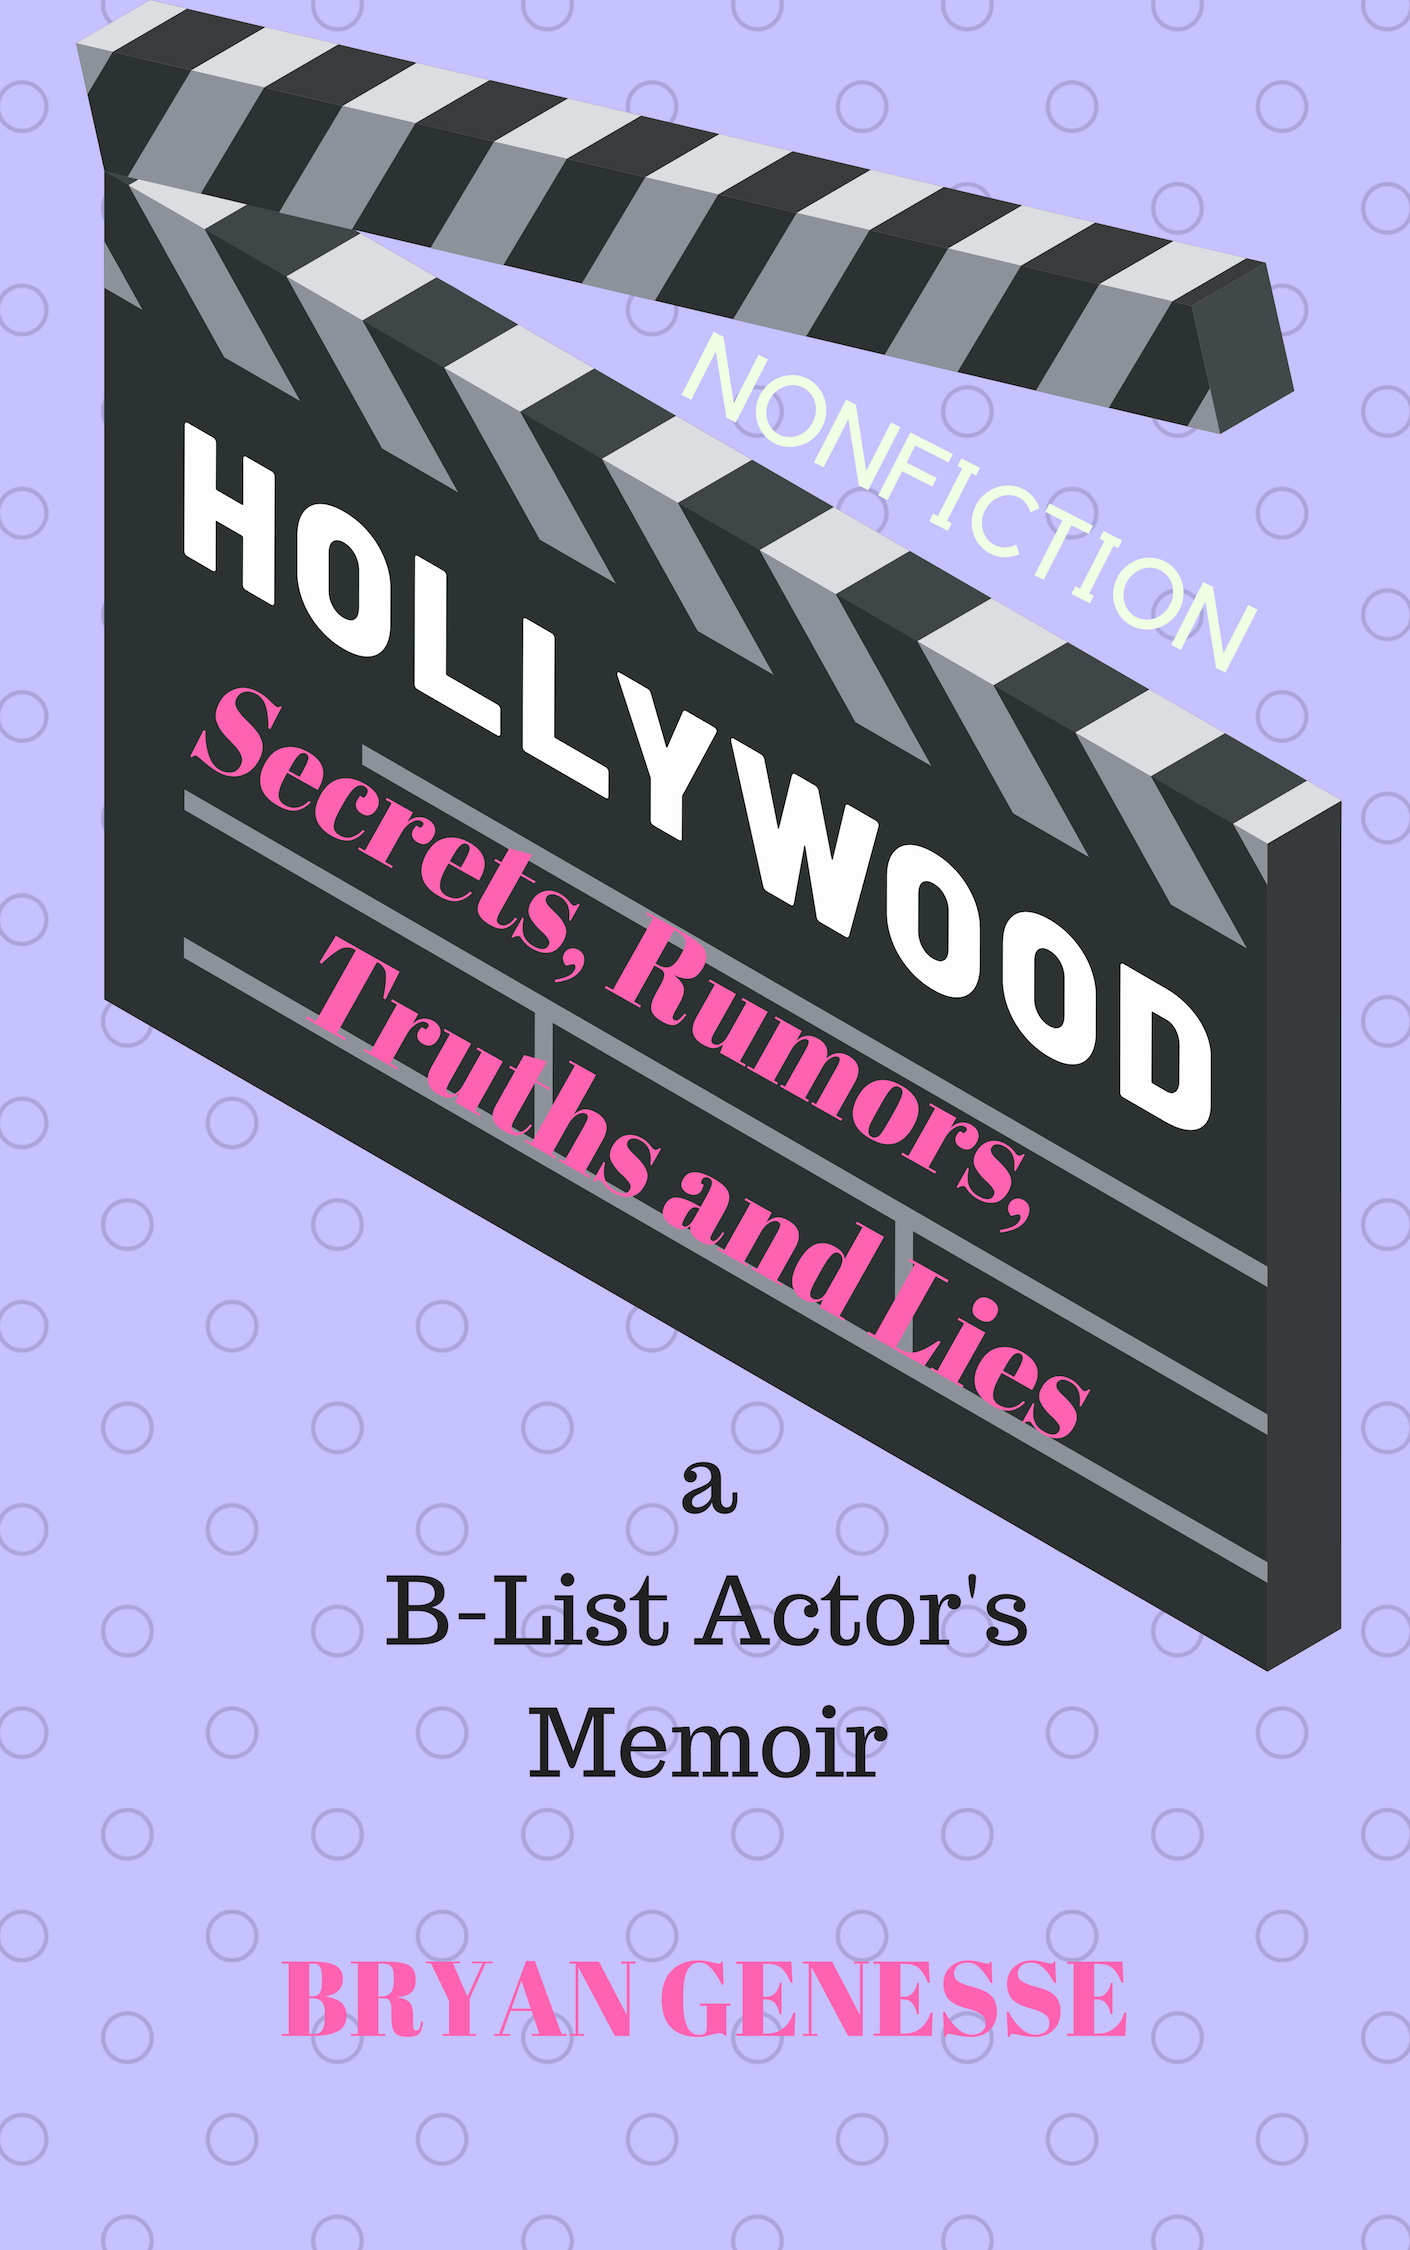 Nonfiction Hollywood jpeg updated cover 10.8.18.